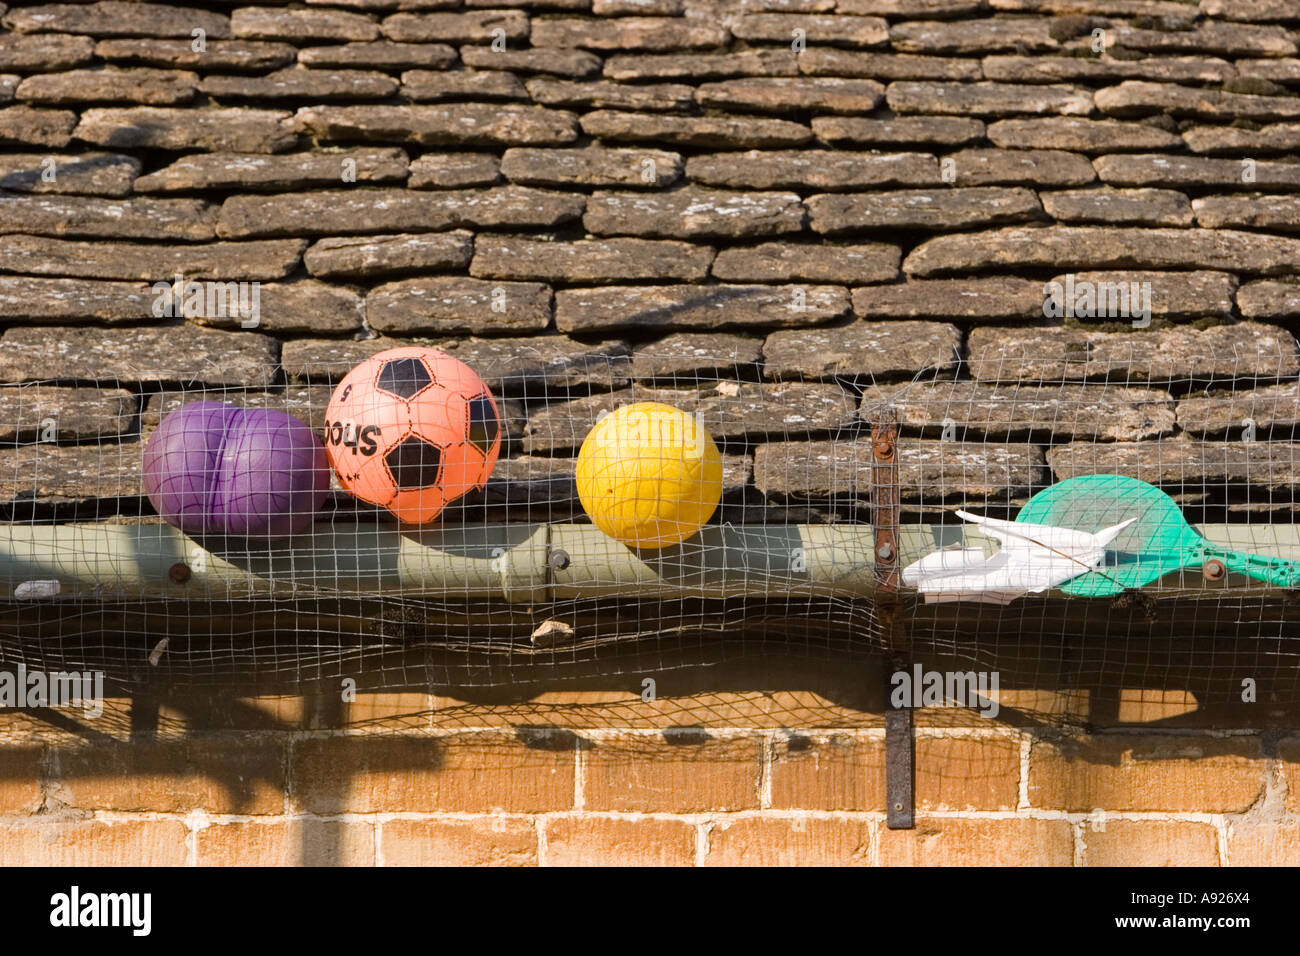 Playground toys such as balls and footballs lost in guttering on the school roof - Stock Image